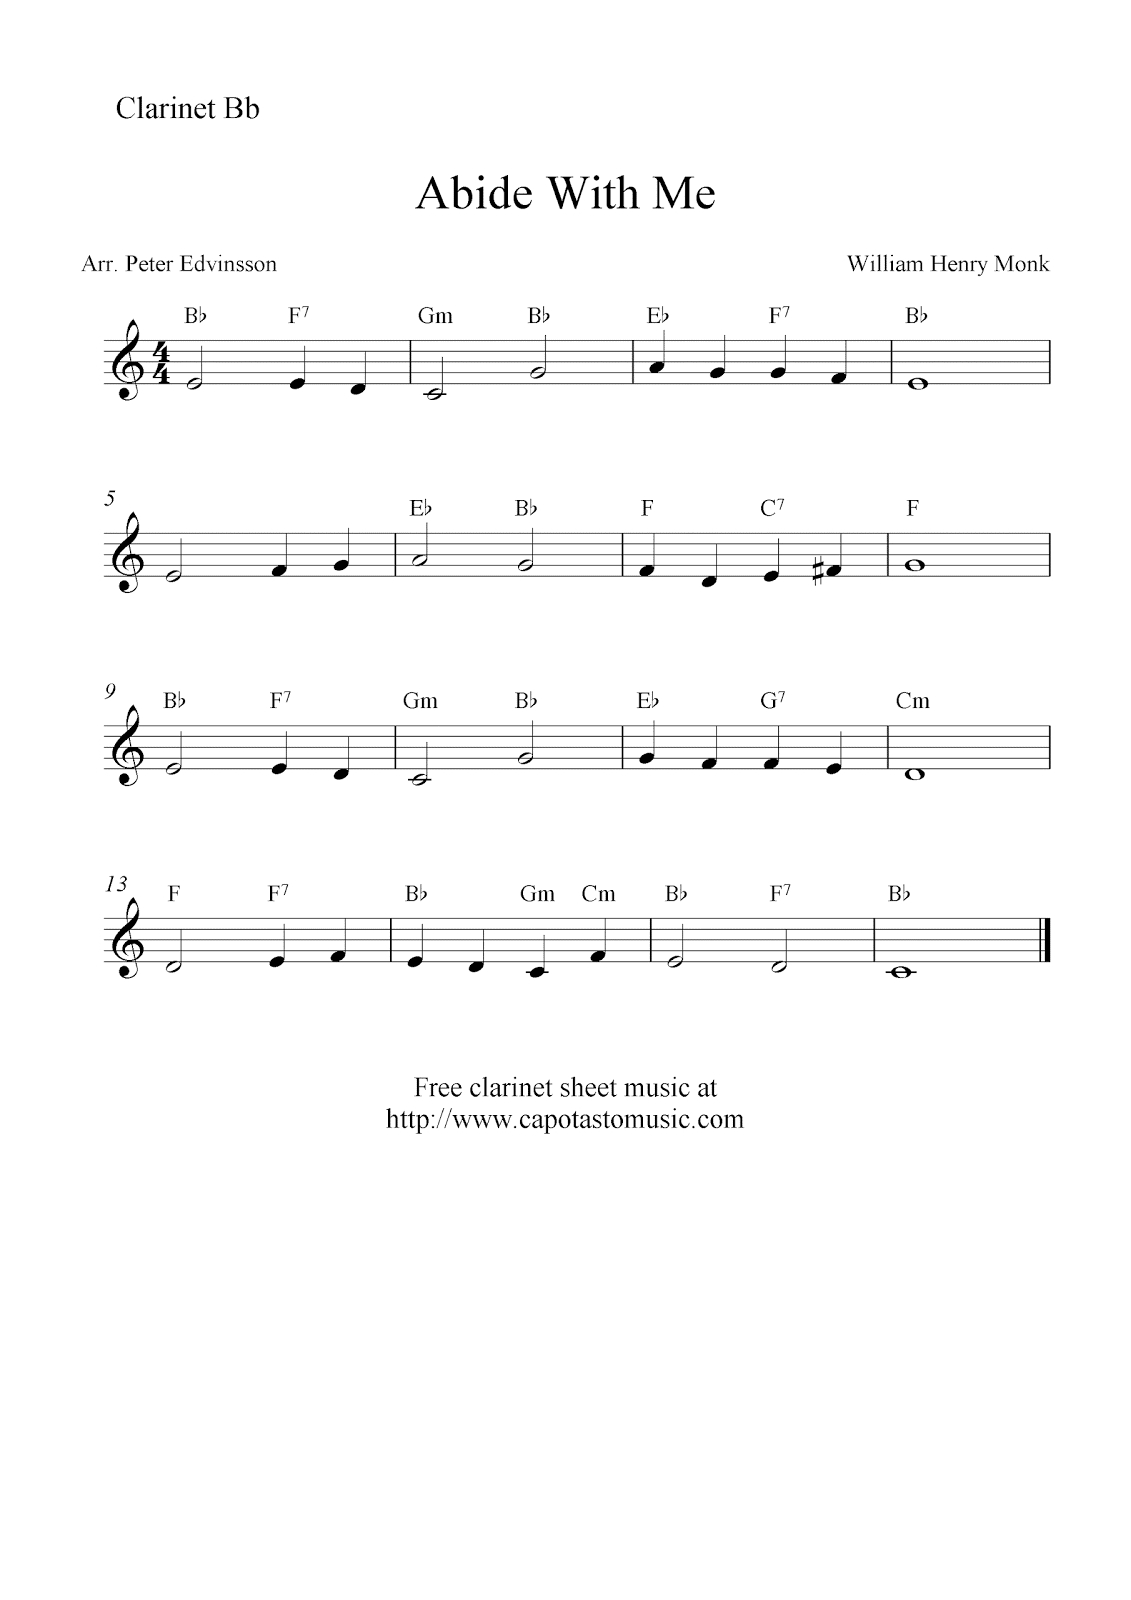 Abide With Me, Free Easy Clarinet Sheet Music - Free Printable Clarinet Sheet Music